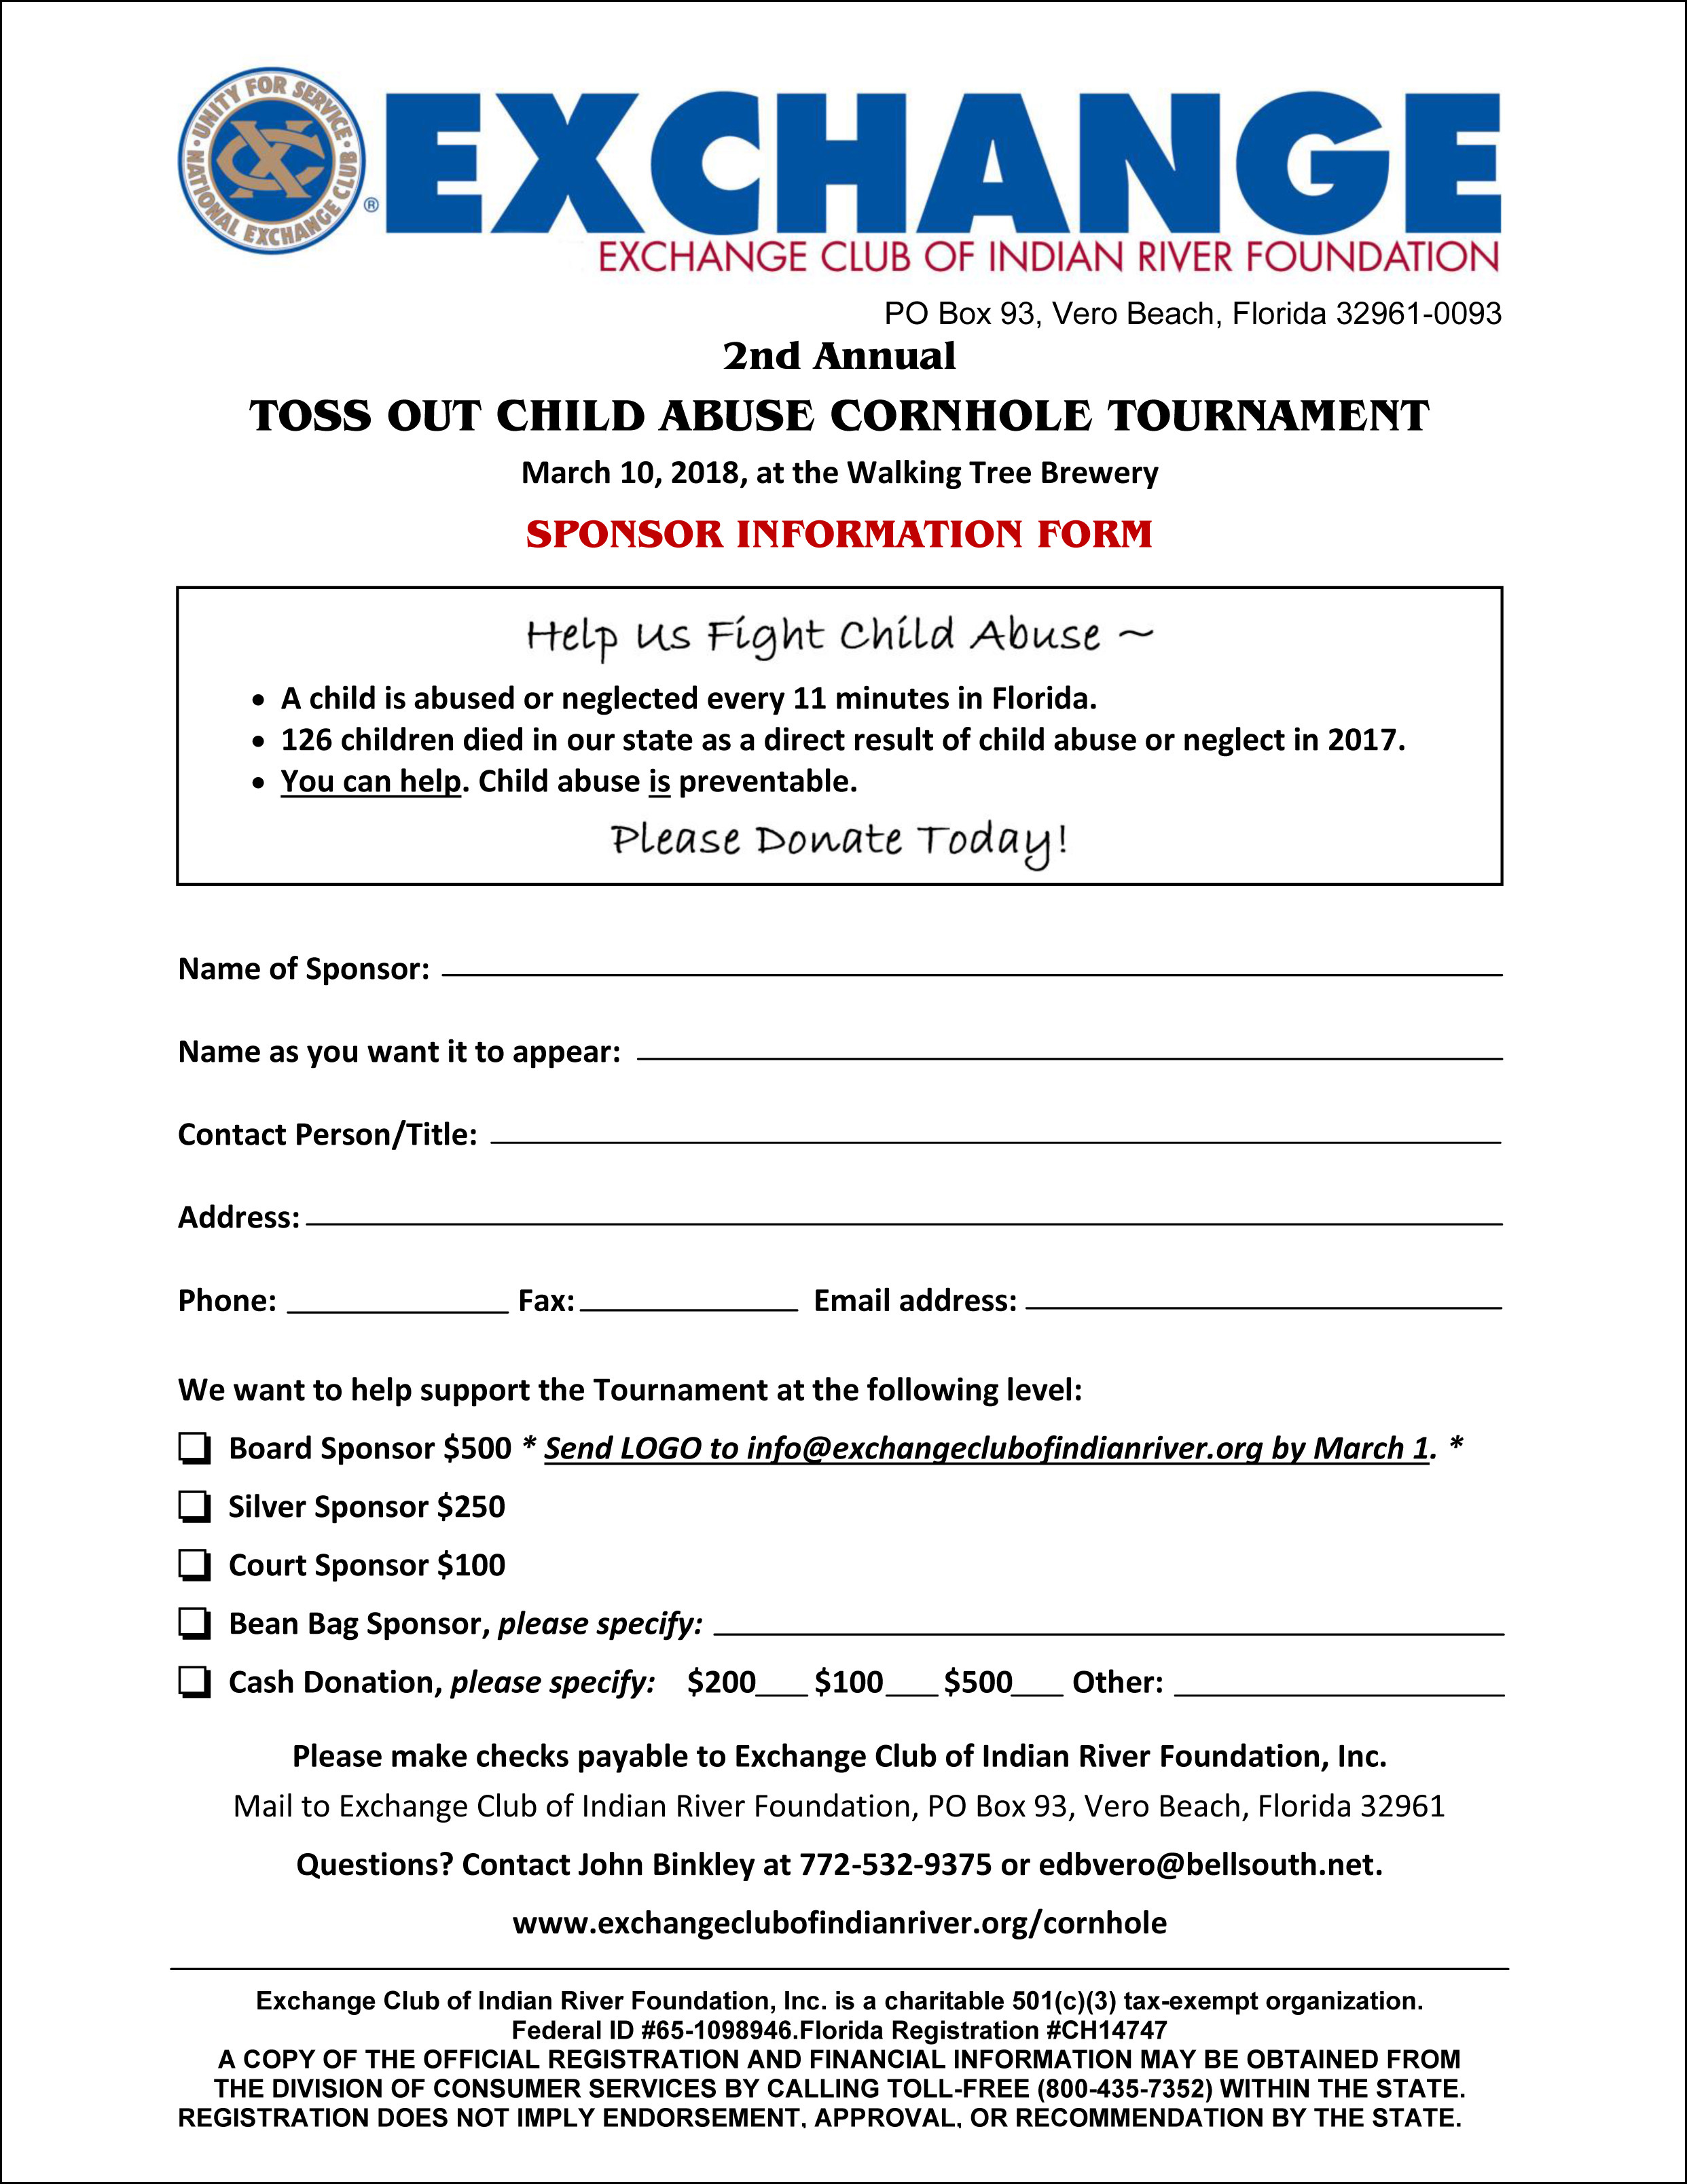 Sponsor Form | Exchange Club of Indian River